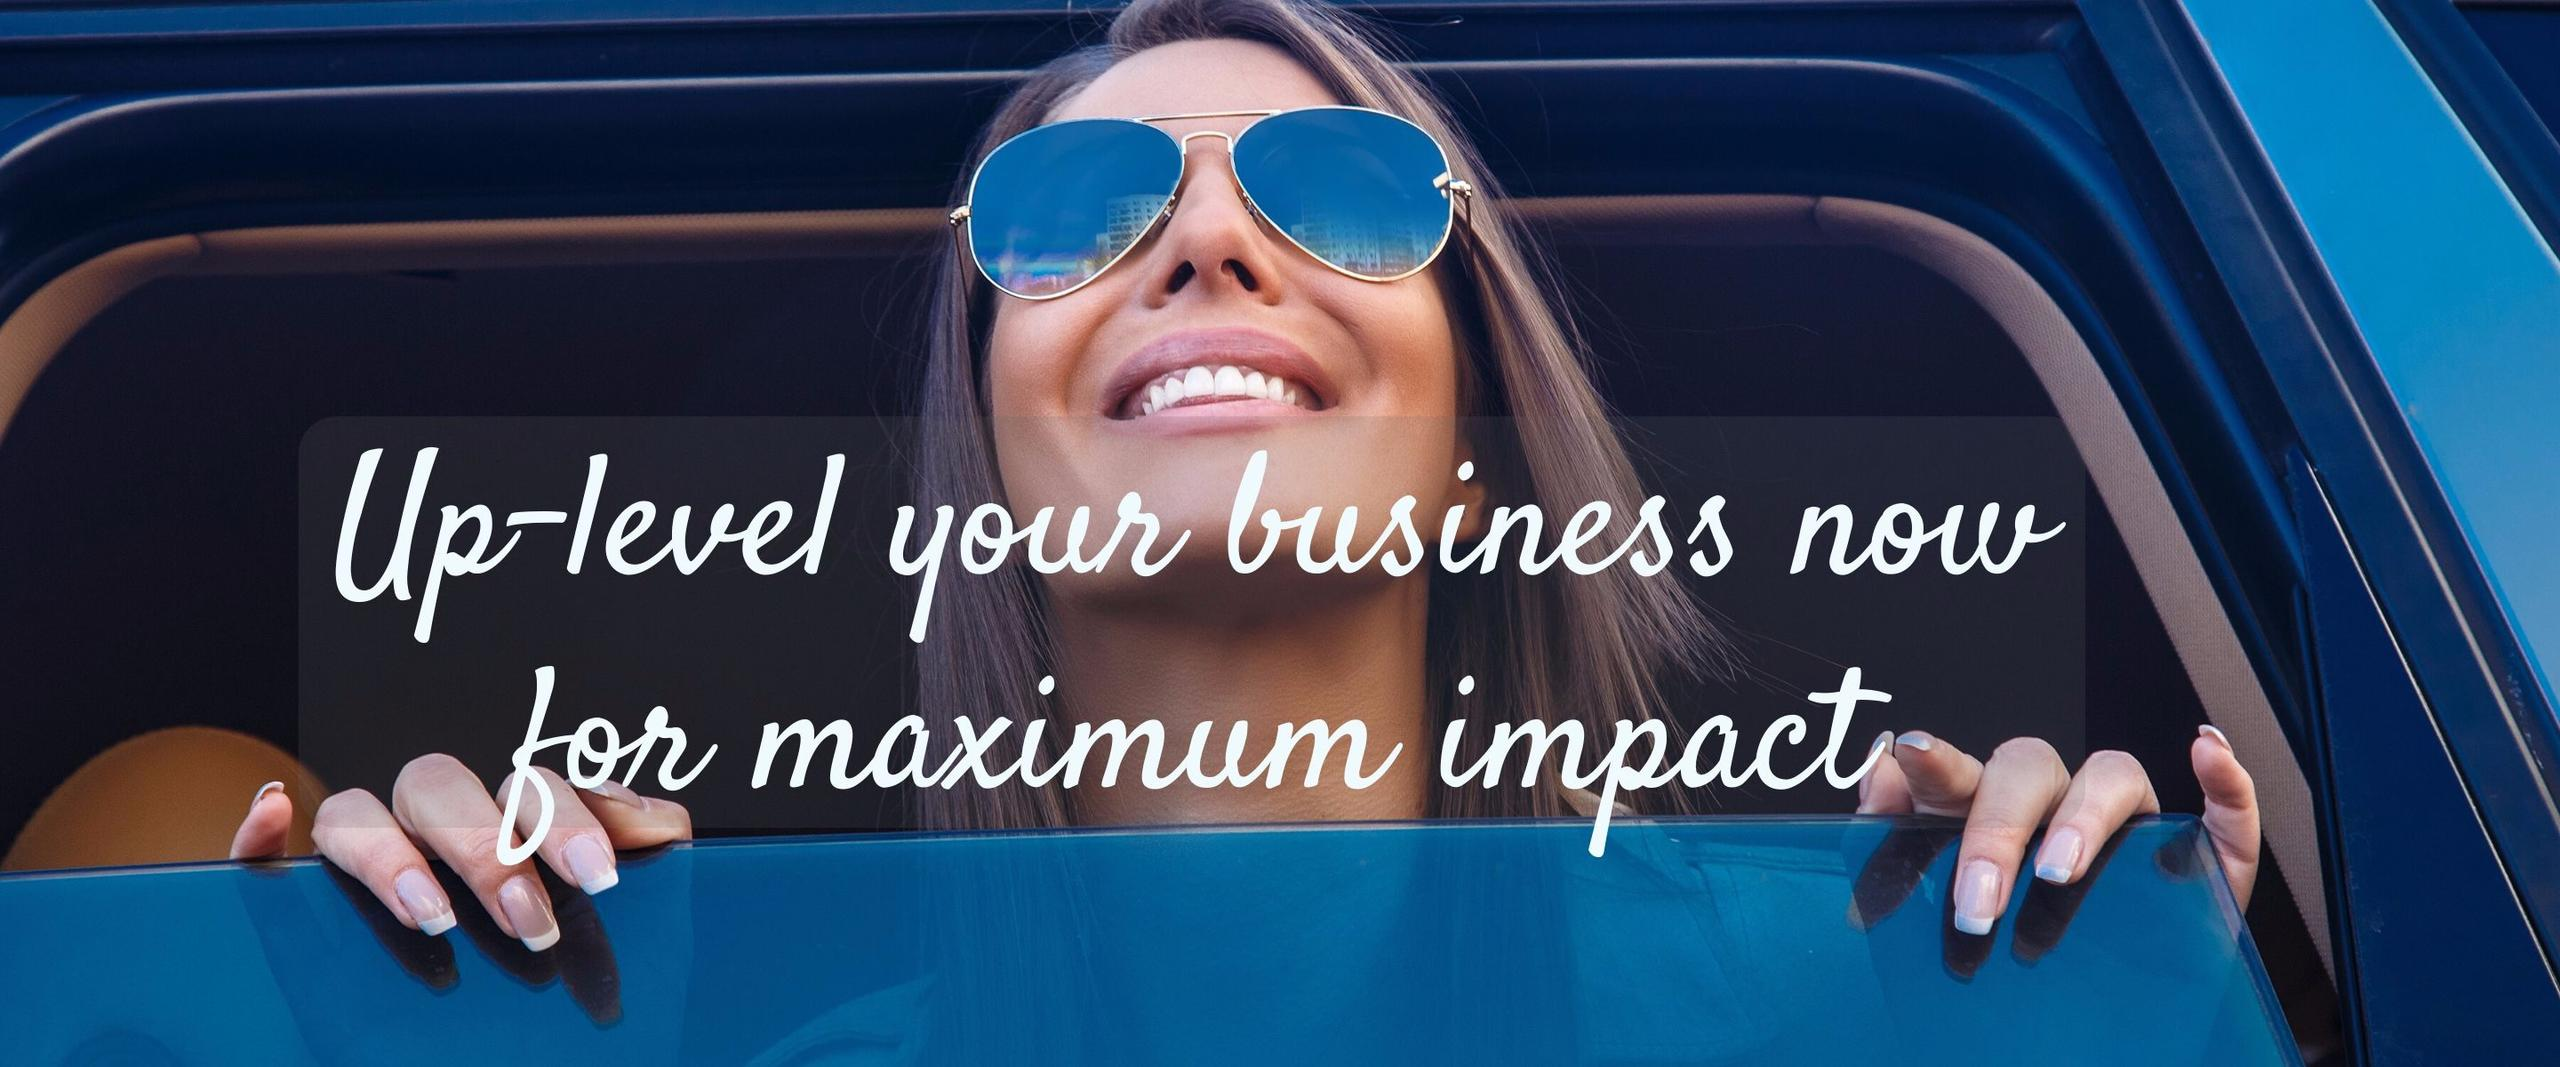 Maximum Impact, Business Consultancy and Coaching, Planet Peacock